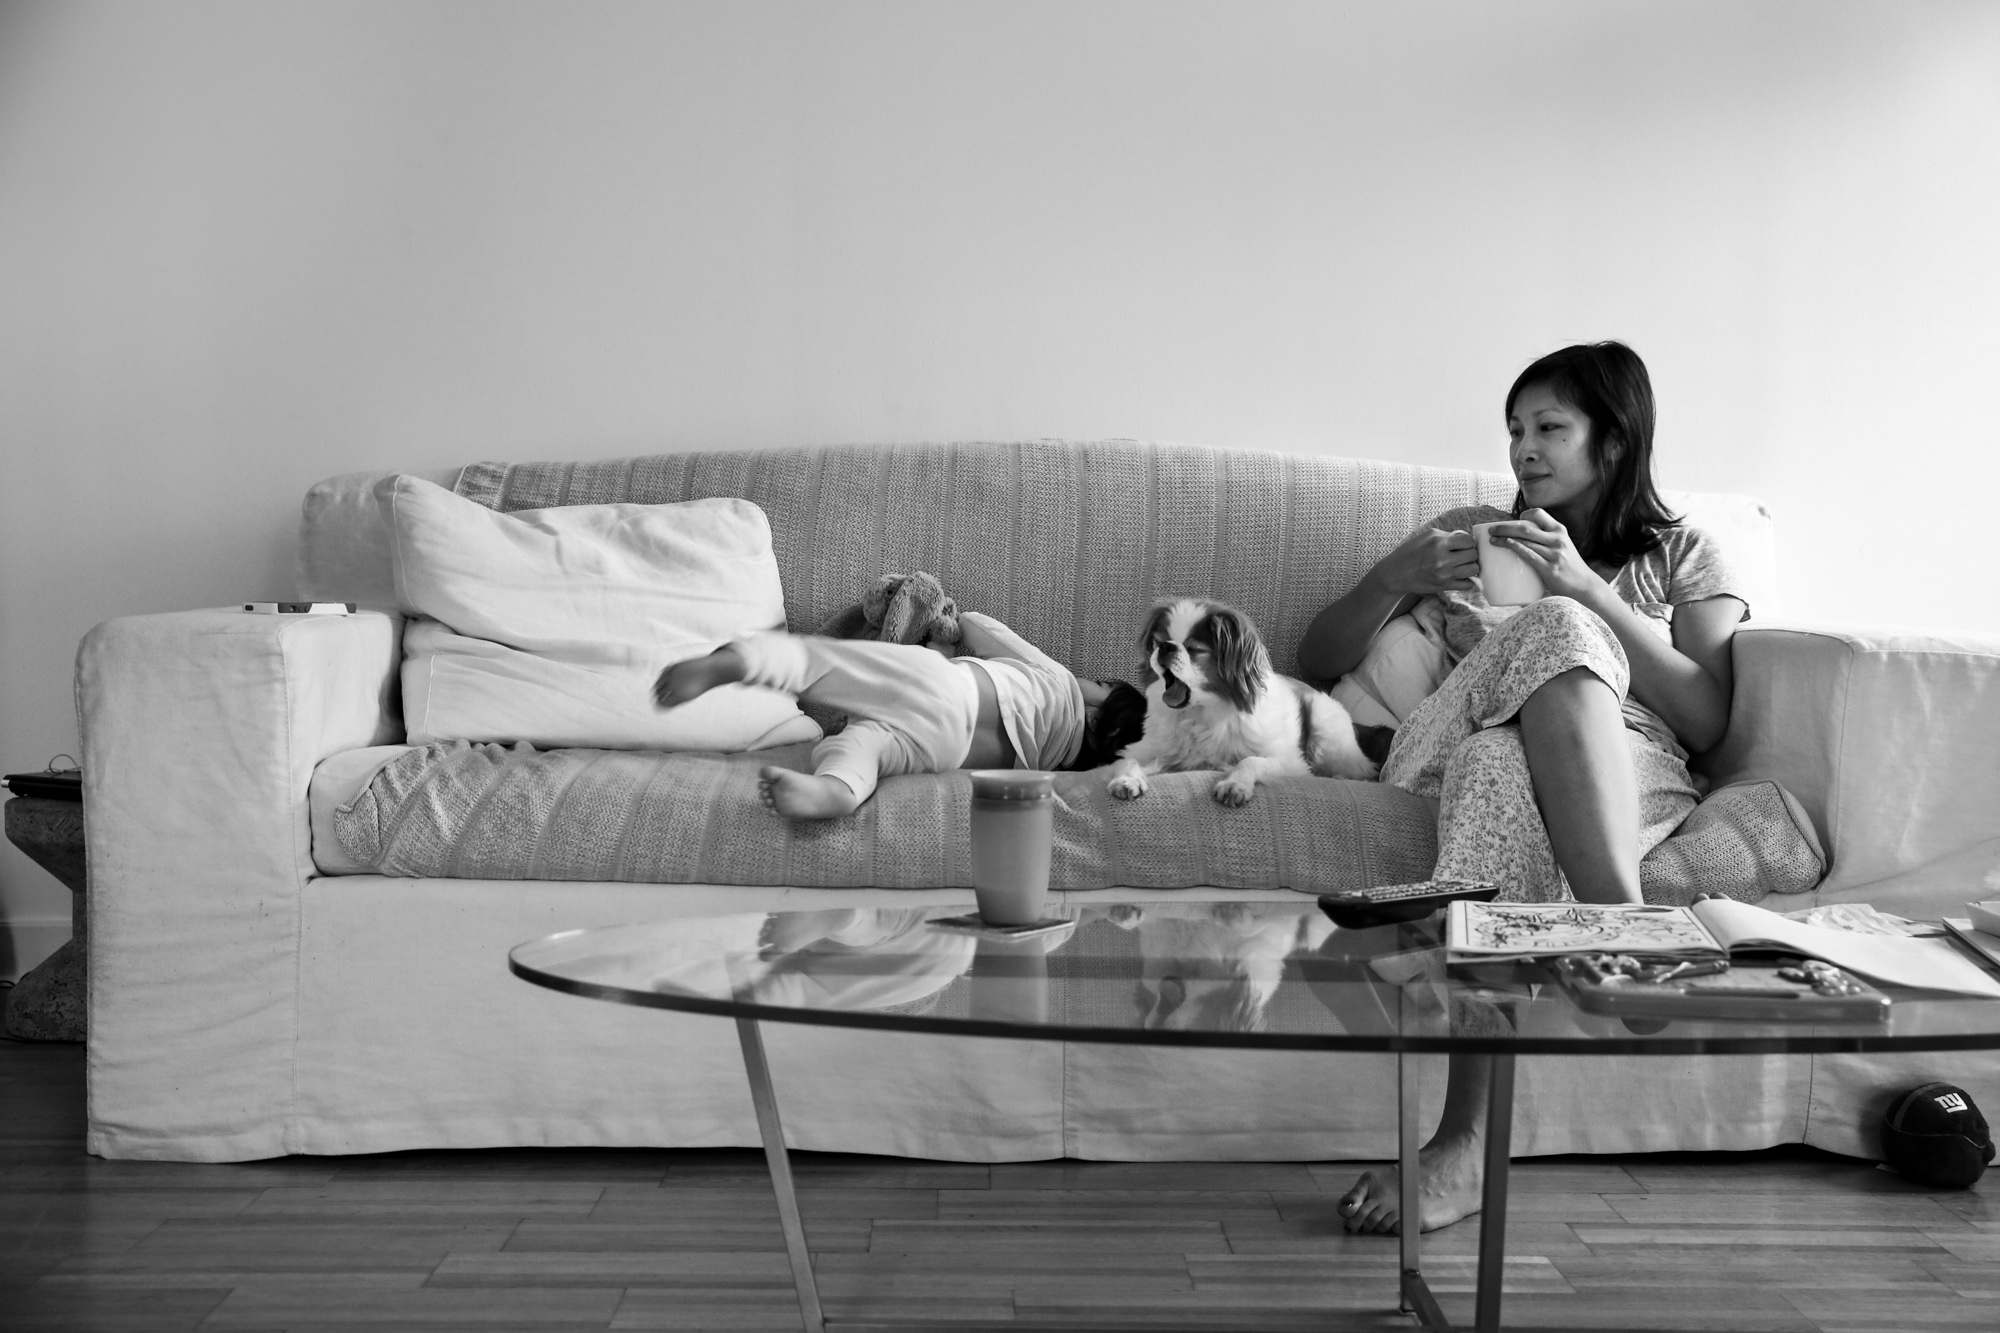 Woman with coffee sits on a couch with a girl and dog yawning